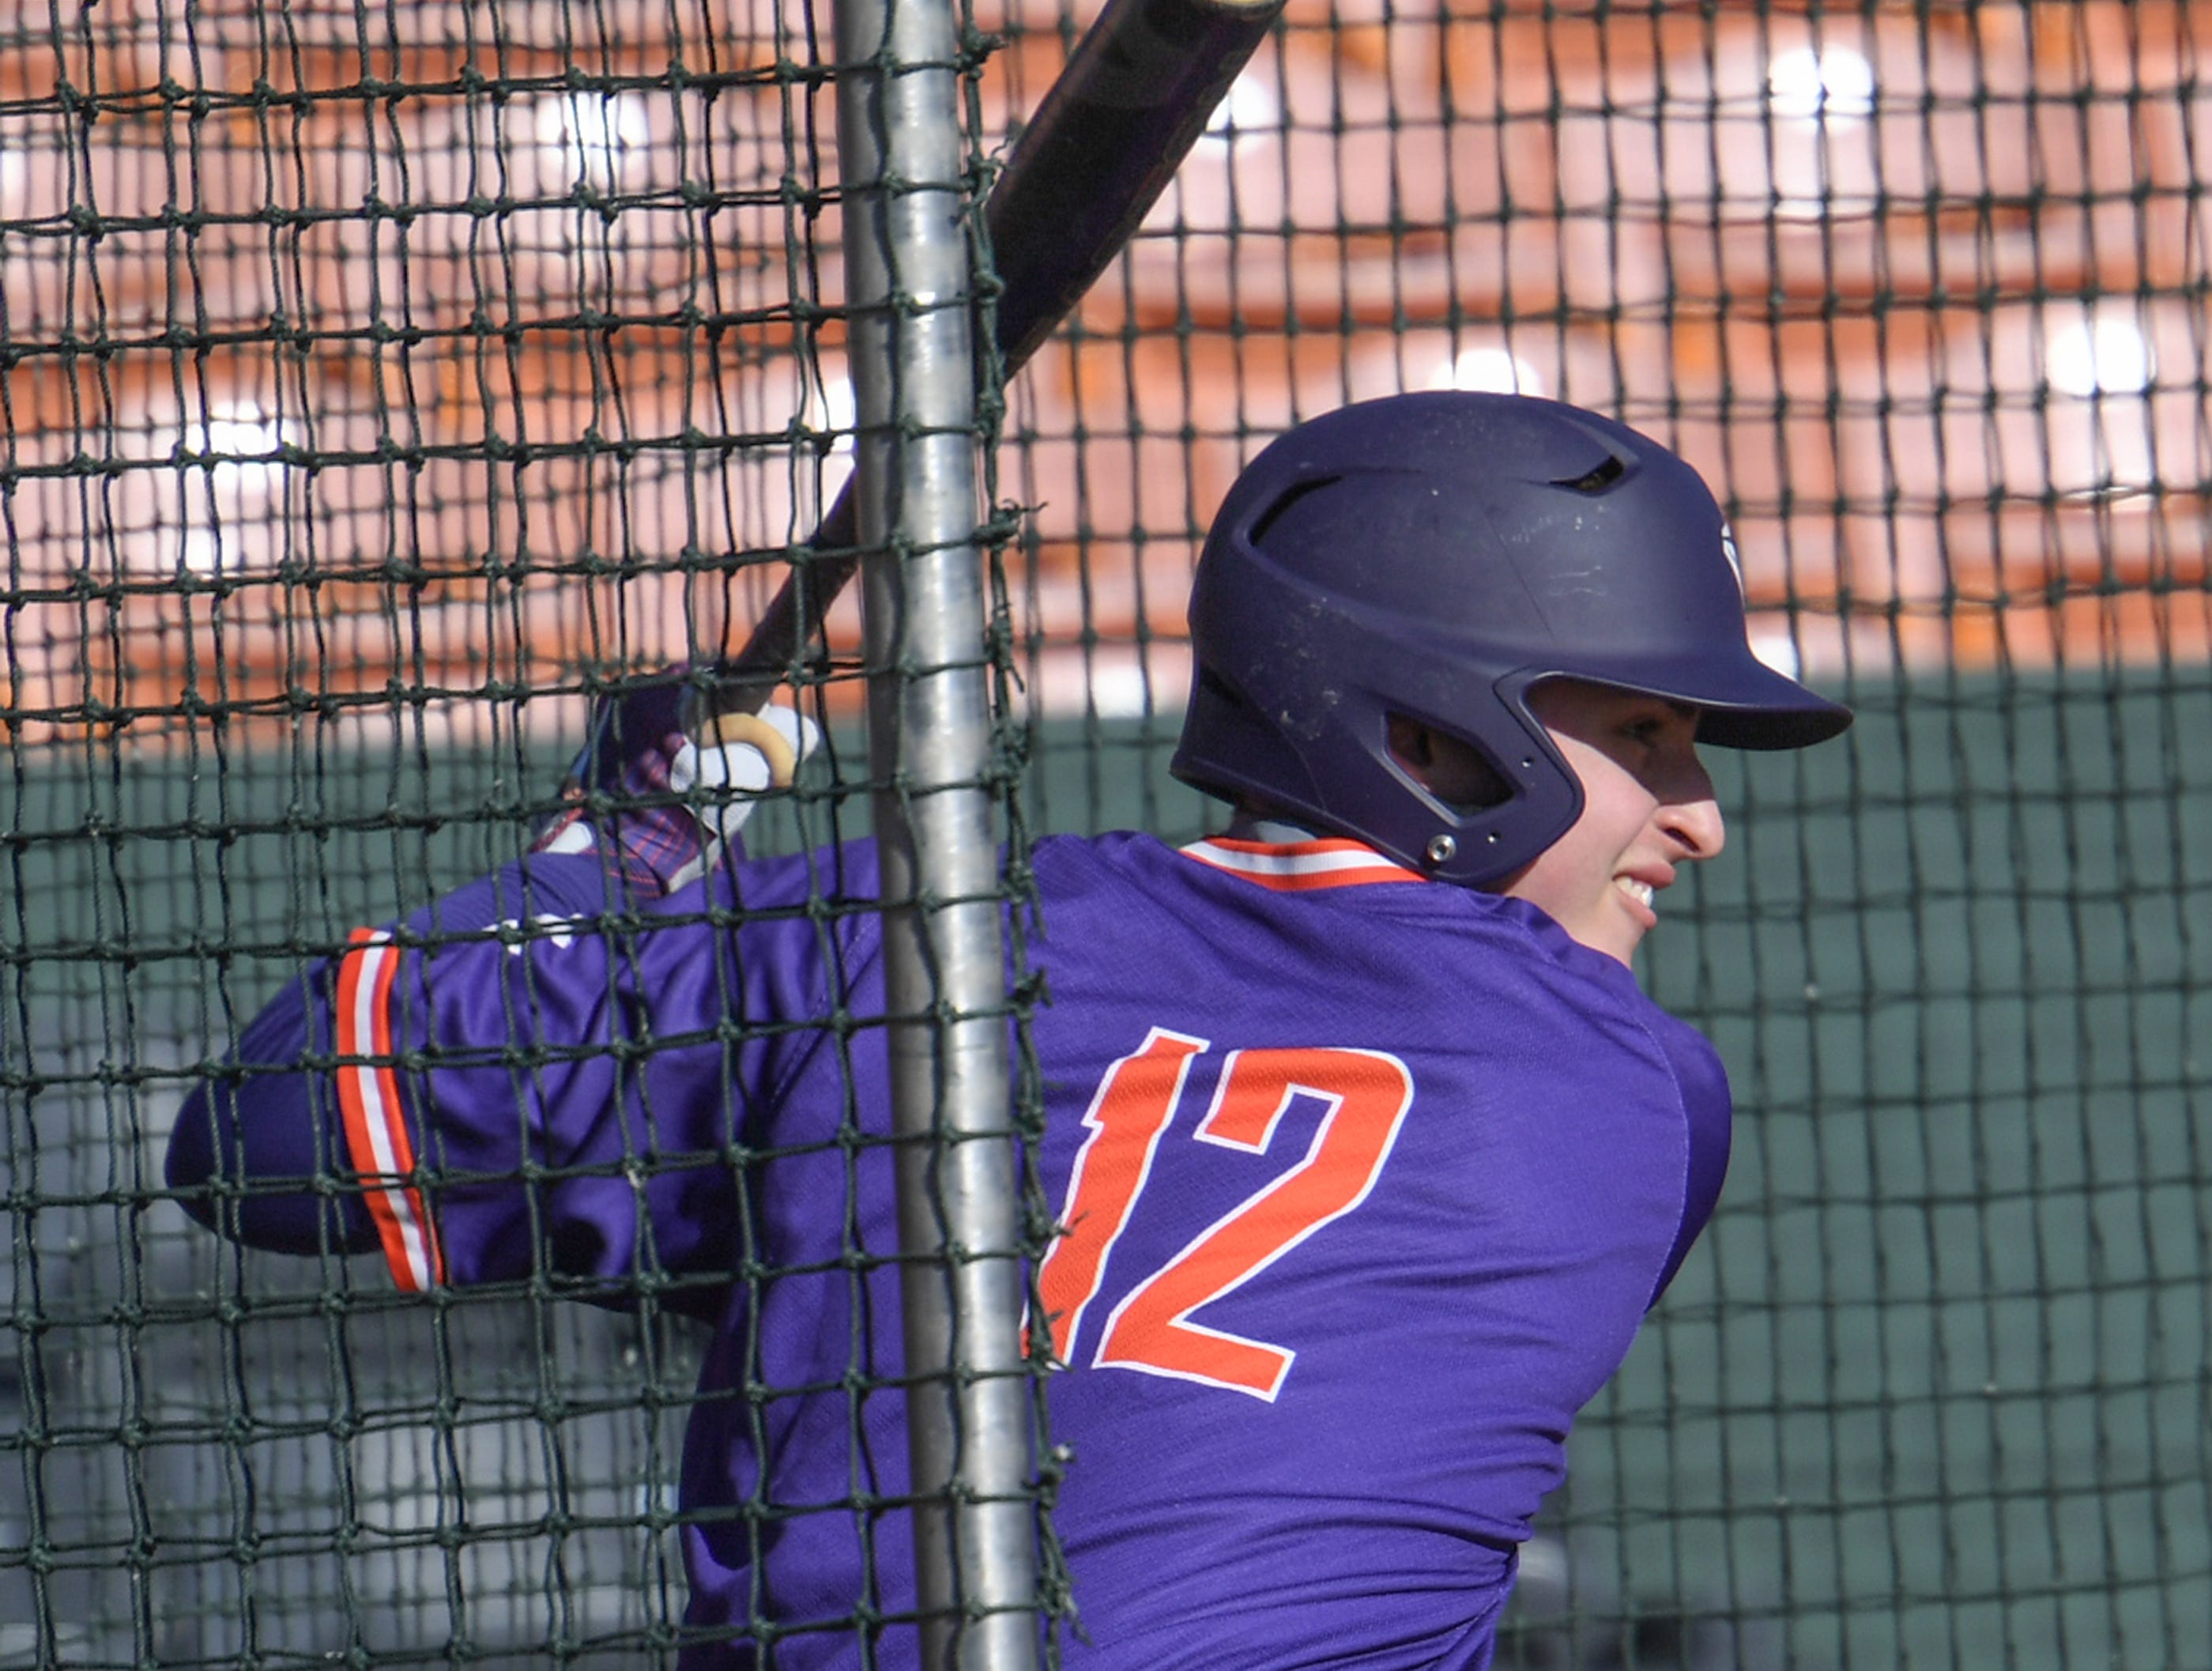 Clemson freshmen Justin Wrobleski (12) waits on a pitch during practice at Doug Kingsmore Stadium in Clemson Friday.